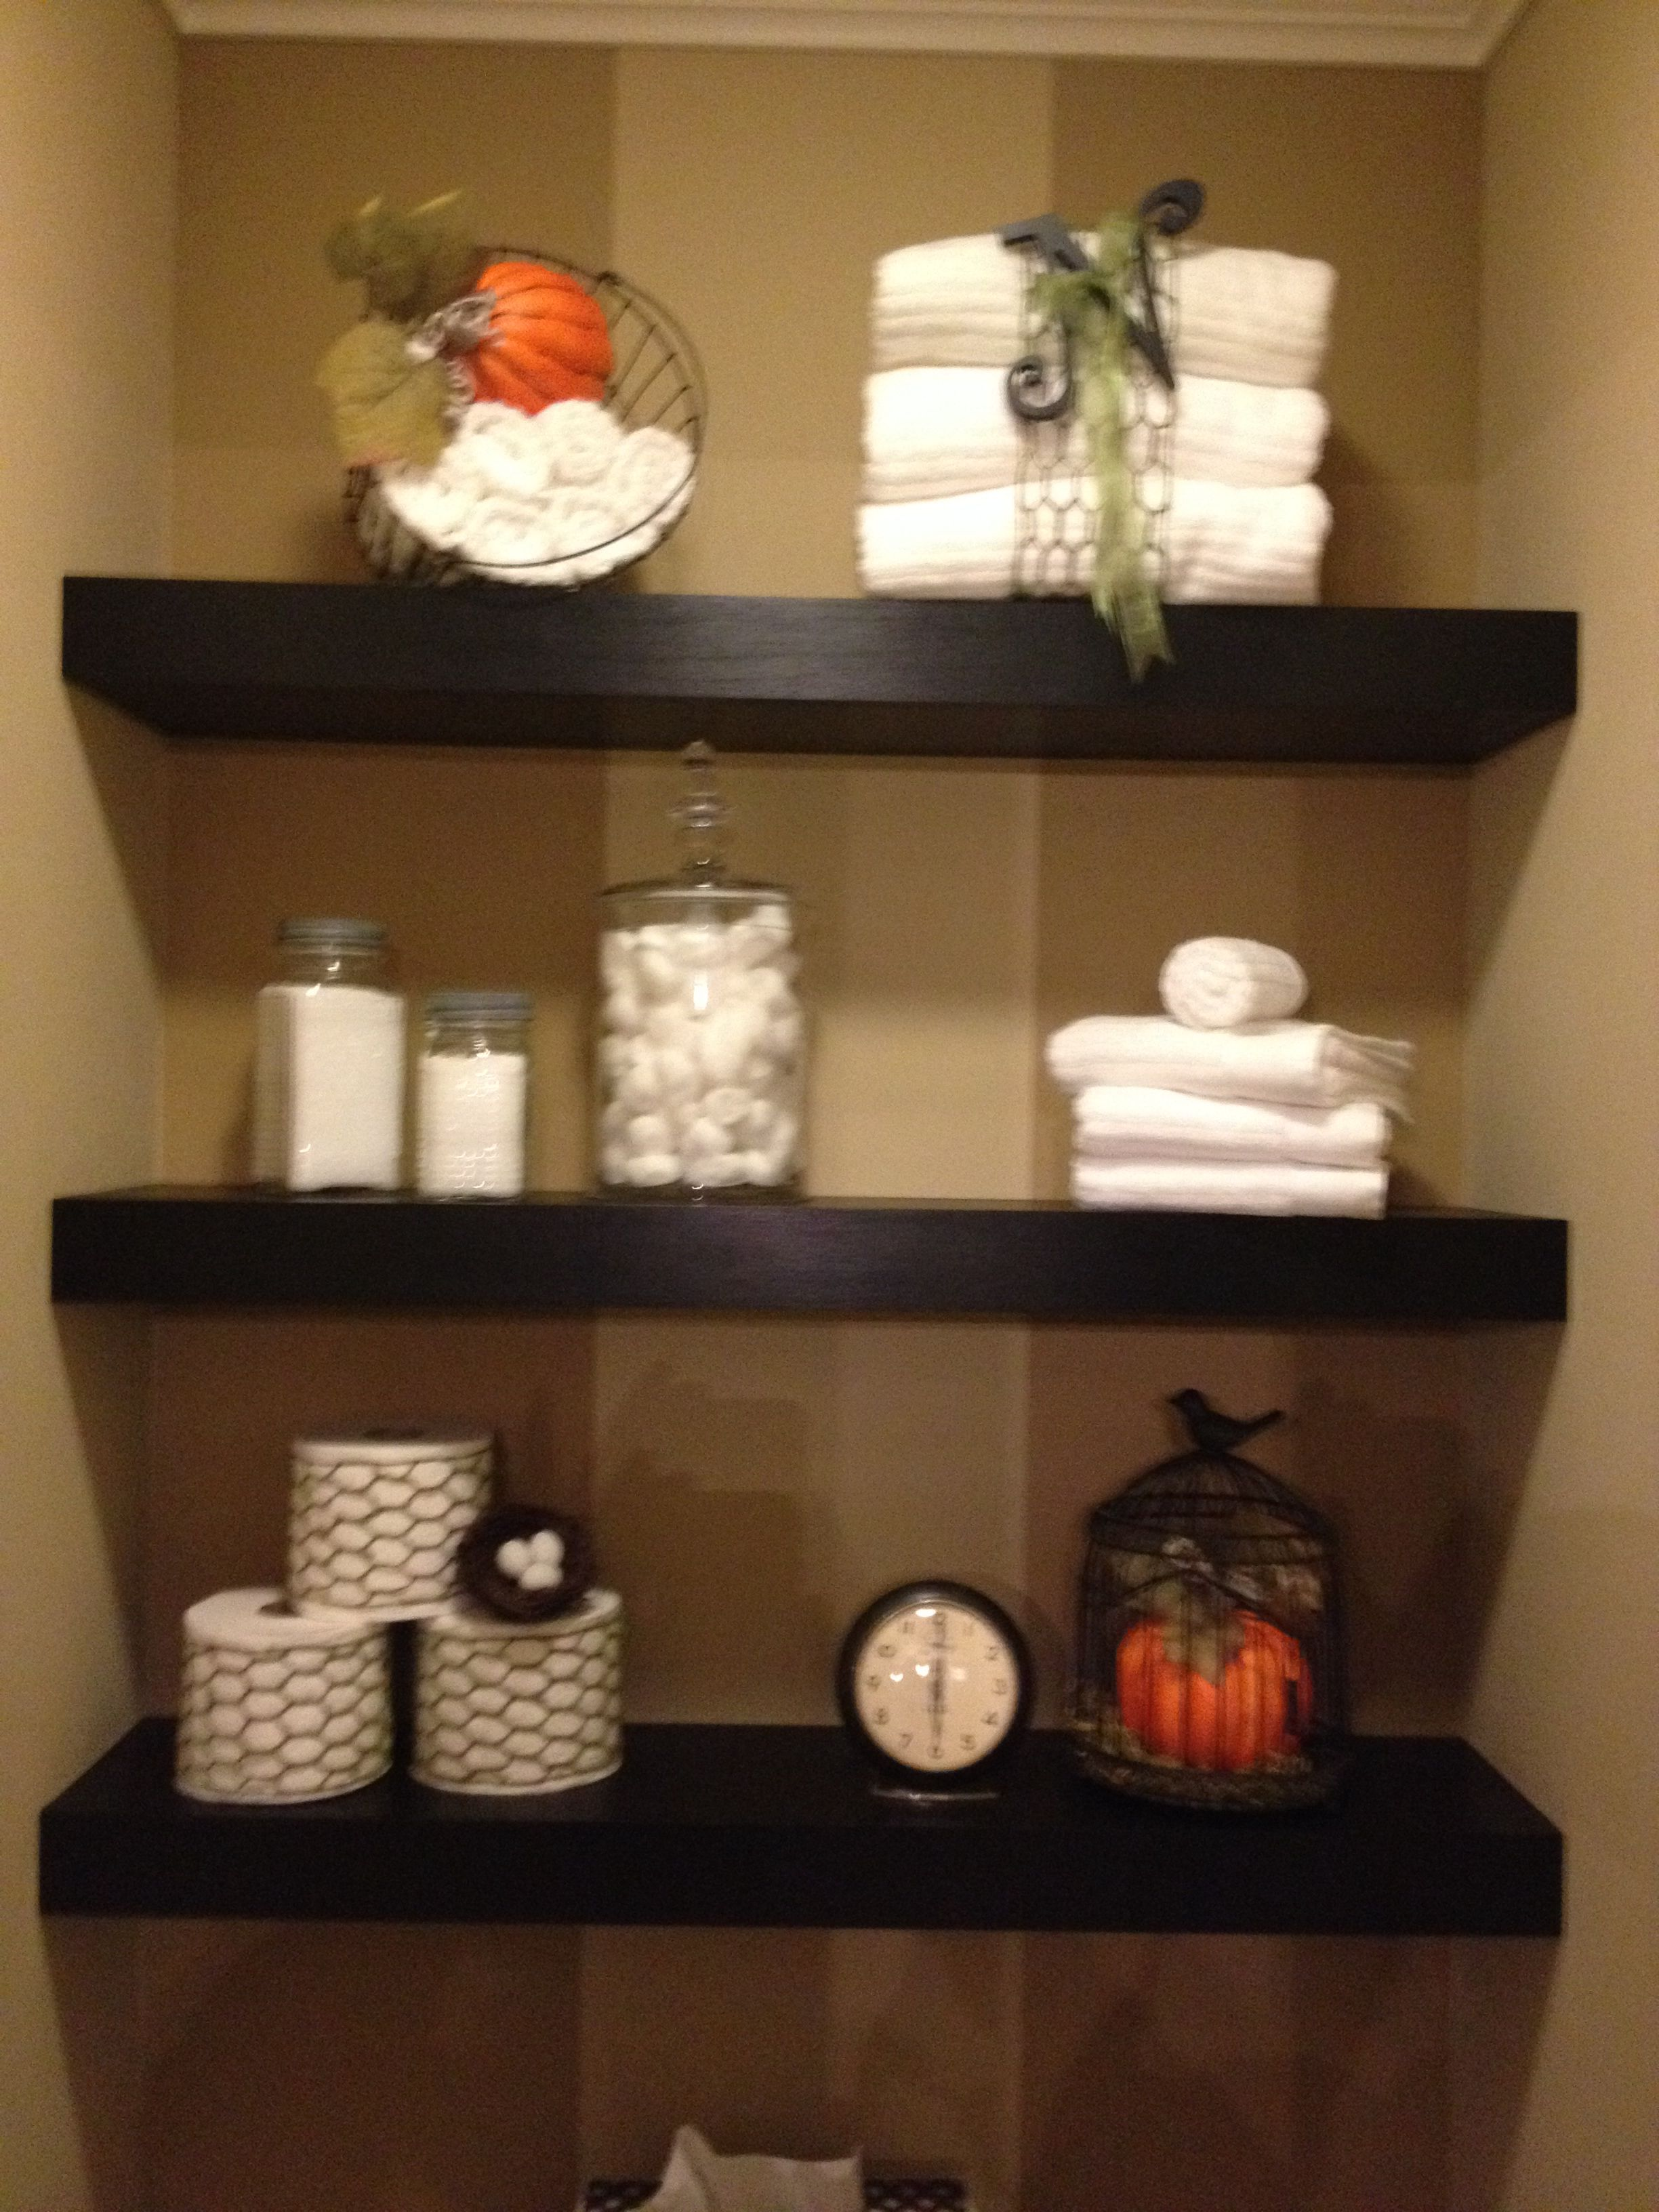 West Elm Floating Shelves